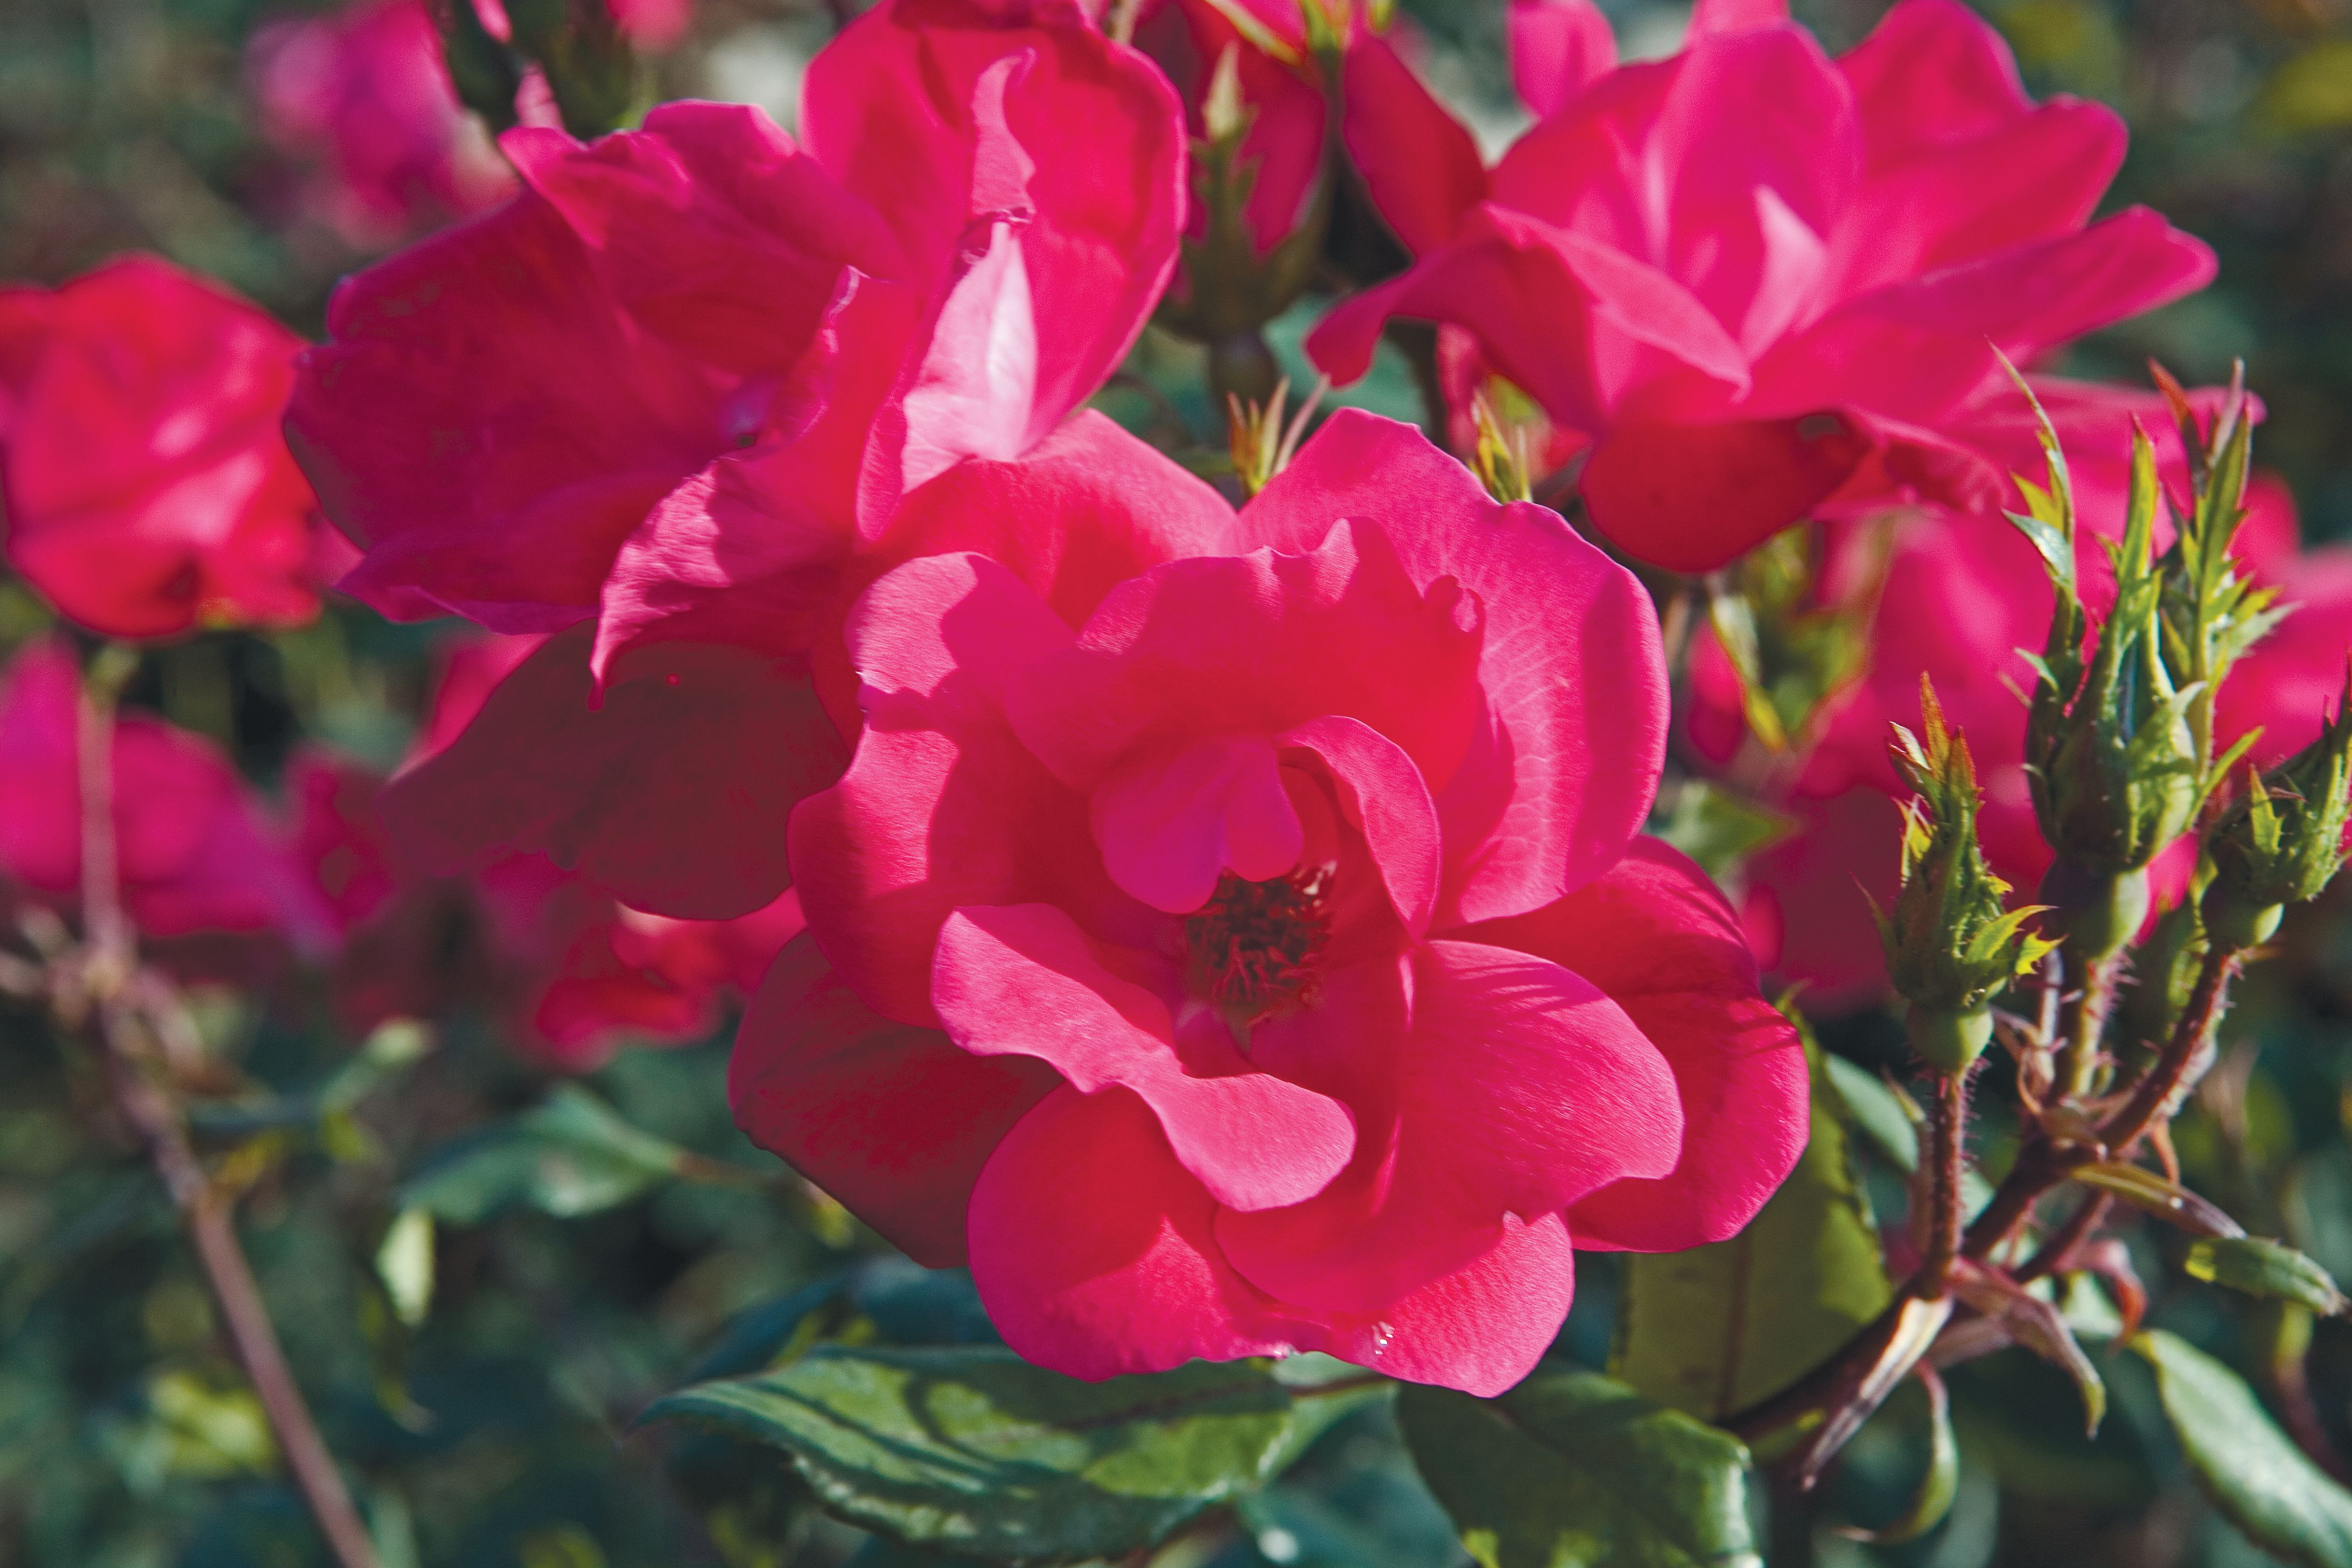 Knock Out 'Radrazz' roses